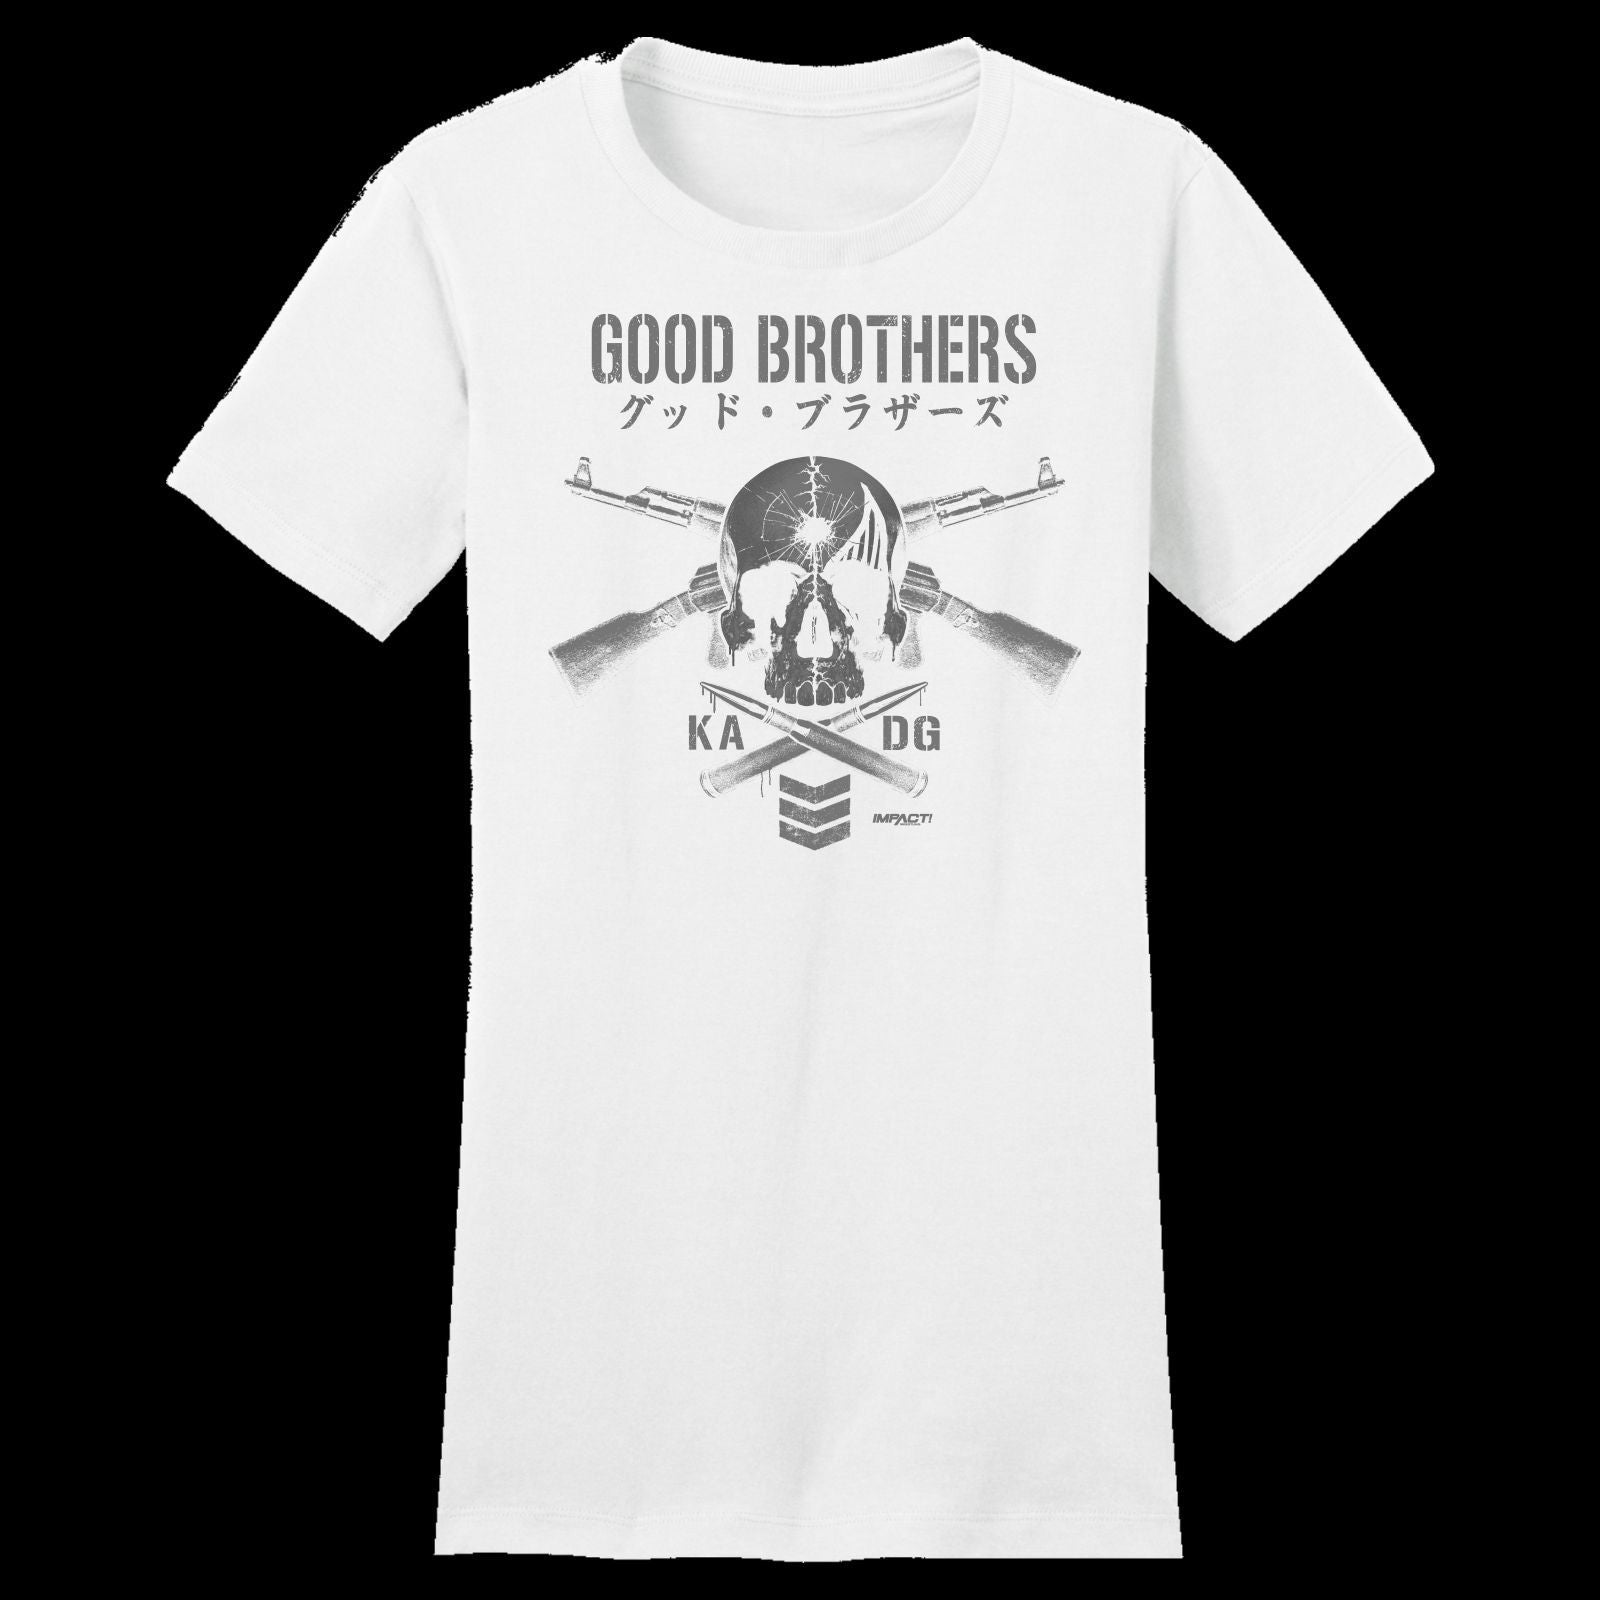 THE GOOD BROTHERS  Women's Short Sleeve Tee